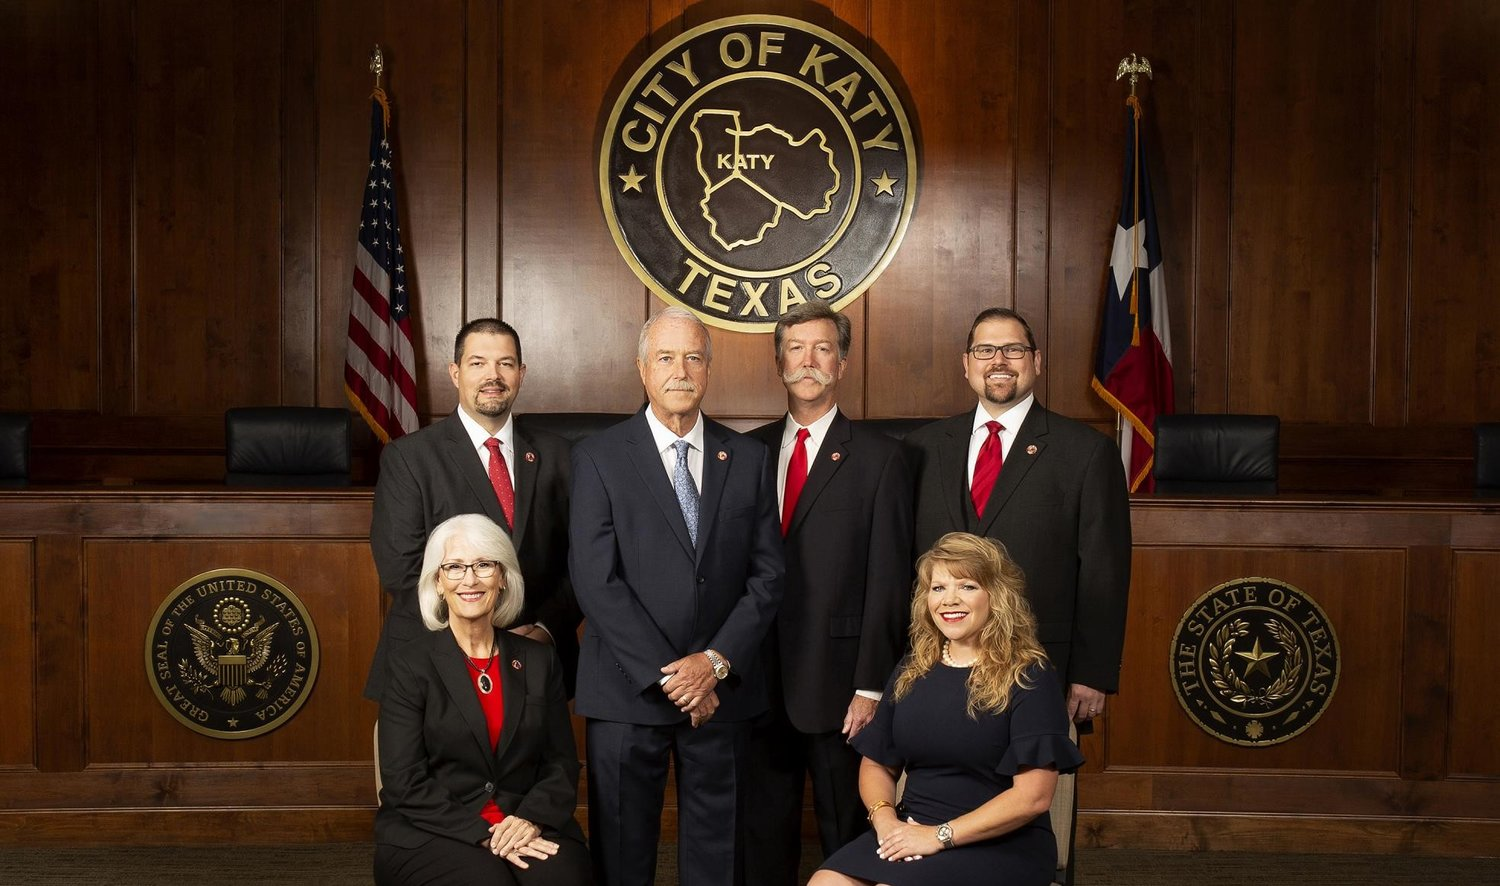 The Katy City Council is currently comprised of (from left to right) Council Member Janet Corte (front, left, seated), Council Member Jennifer Stockdick (front, right, seated) Mayor Pro Tem Chris Harris (back, left), Mayor Bill Hastings (blue tie) Council Member Durran Dowdle (handlebar mustache) and Frank Carroll (back, right). This will be one of the last meetings with this group of council members after Dowdle lost his bid for reelection to Rory Robertson during the Nov. 3 elections.